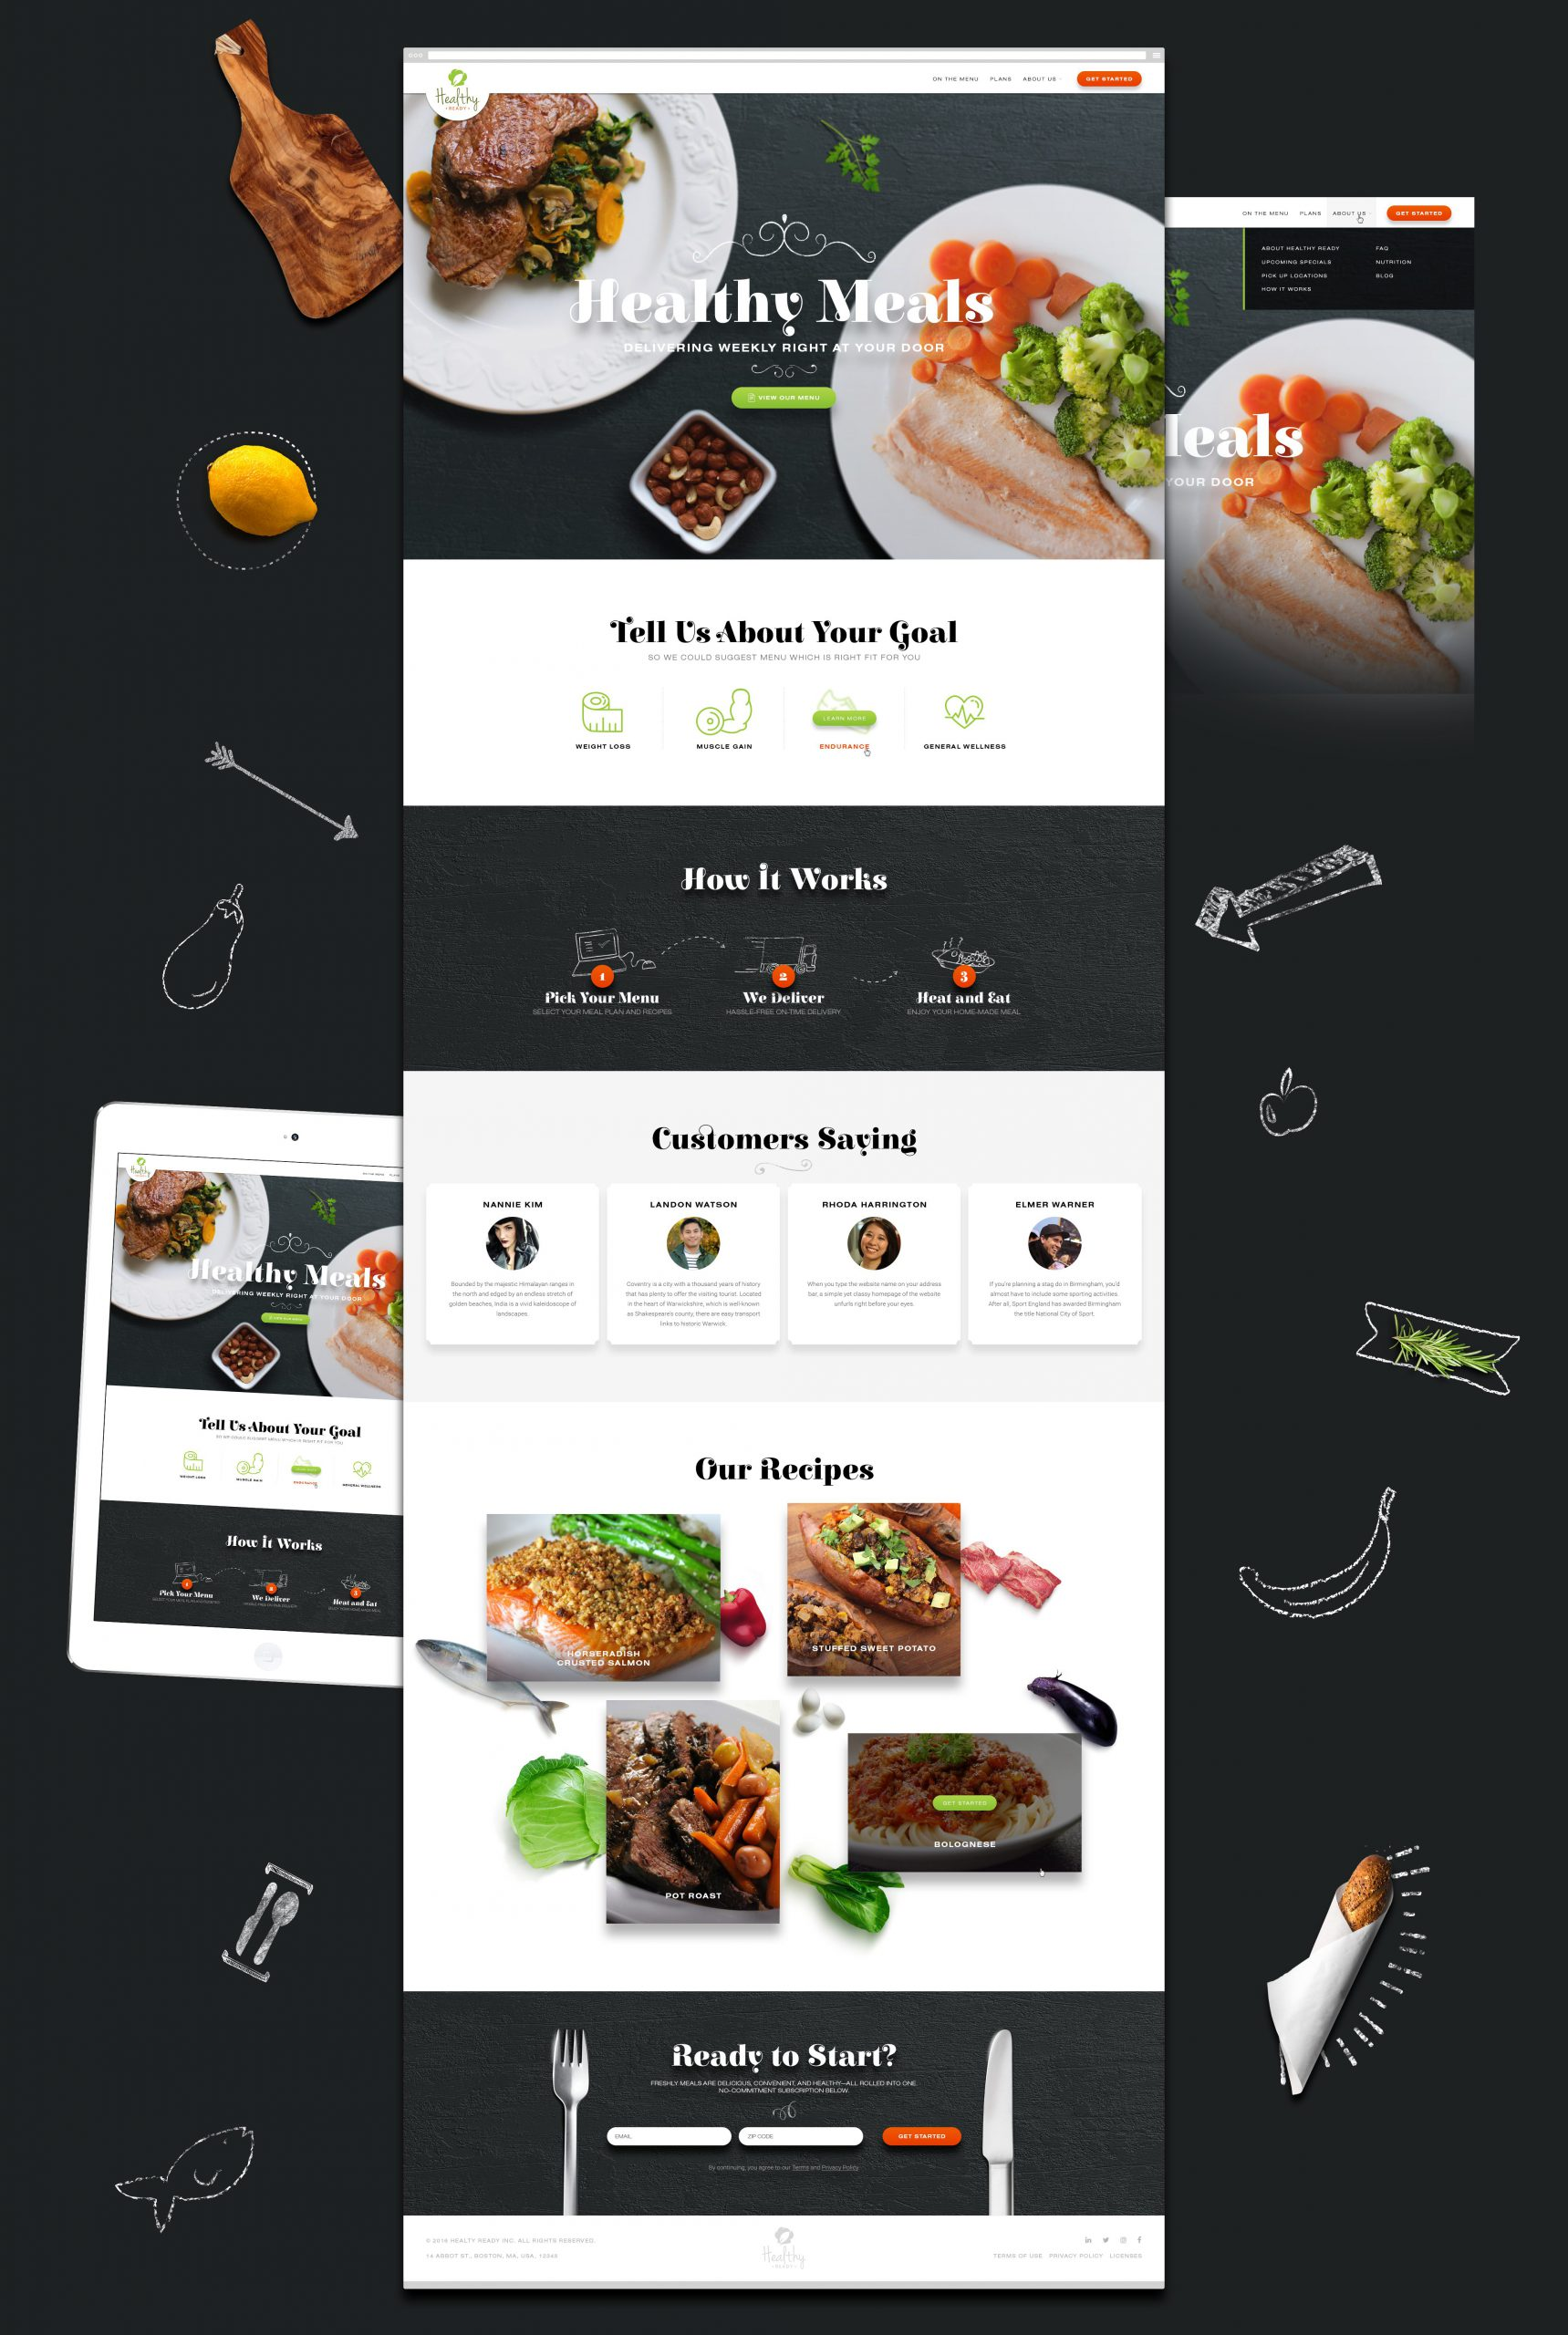 Homepage design for a healthy meals brand